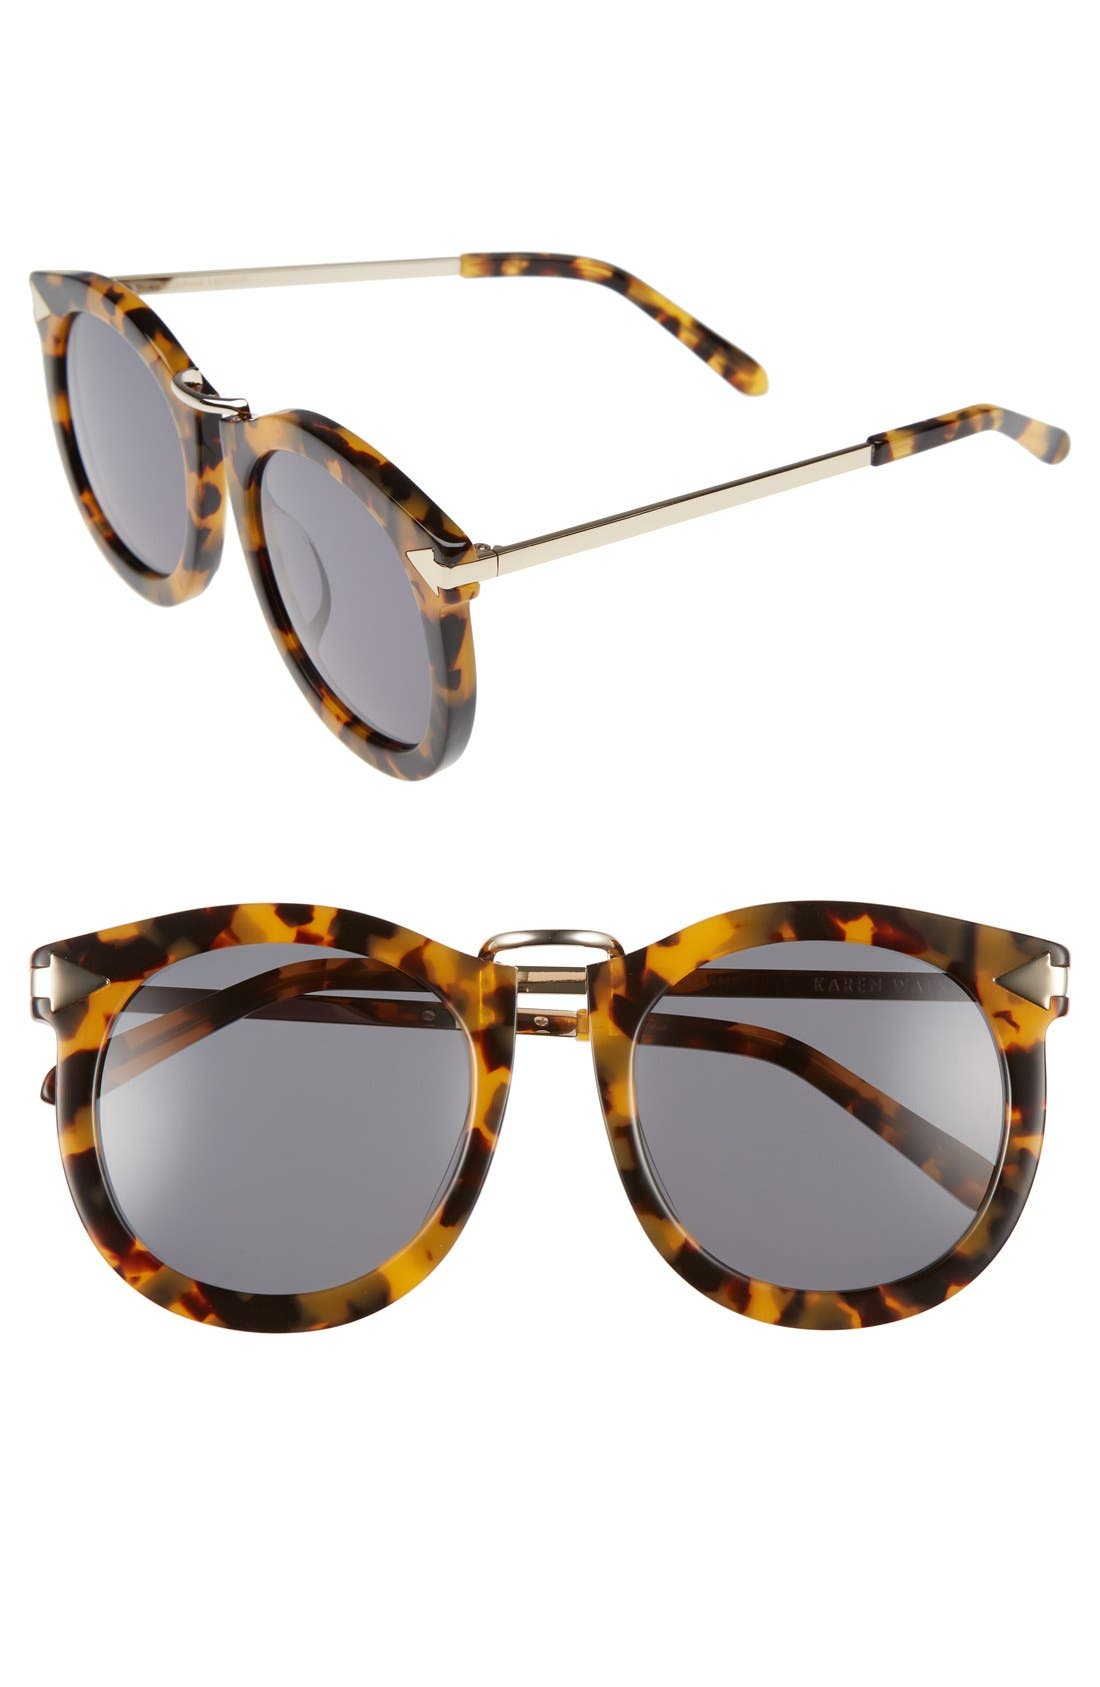 KAREN WALKER Alternative Fit Super Lunar - Arrowed by Karen 50mm Sunglasses